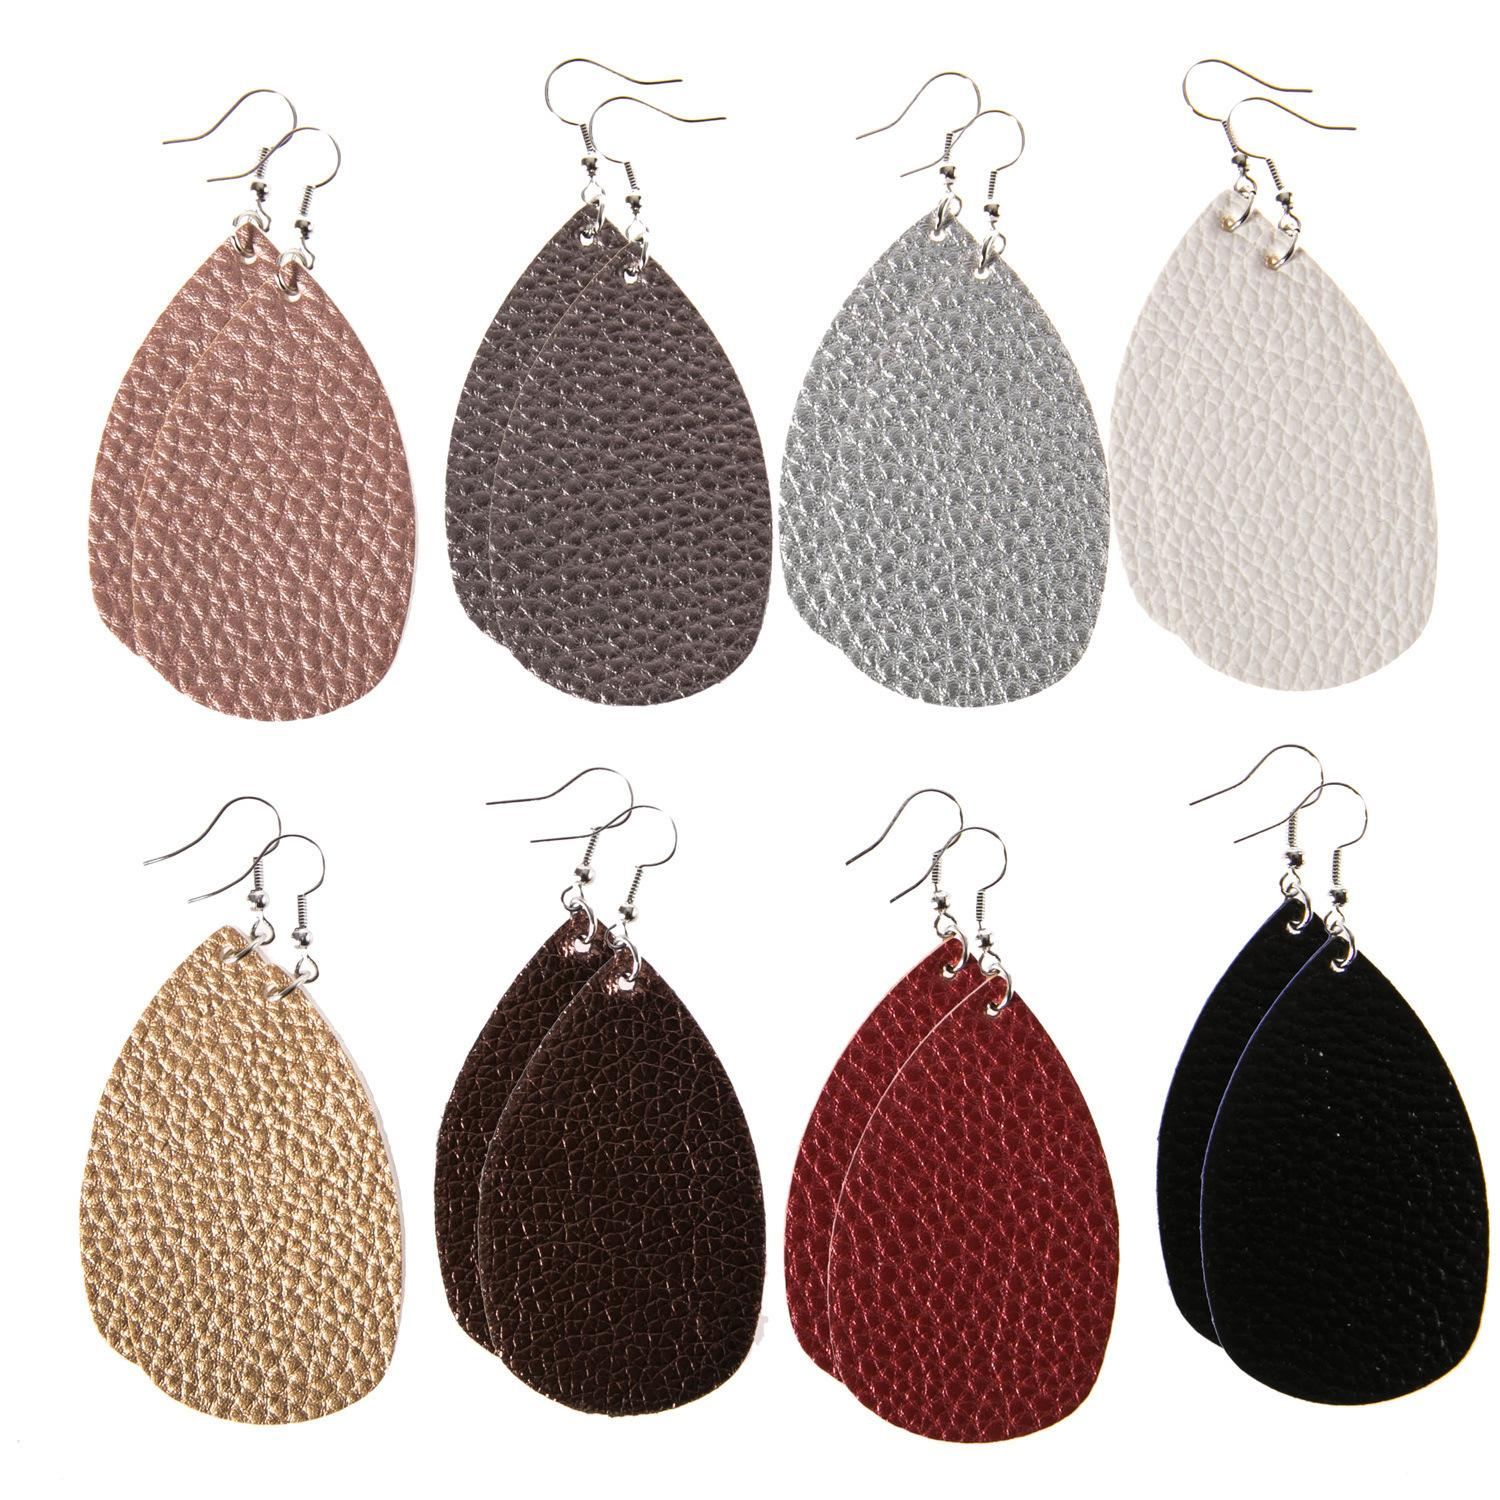 Bucket Form Two-sided Reunite With Leatherwear Earrings Pu Multicolor Leather Earrings